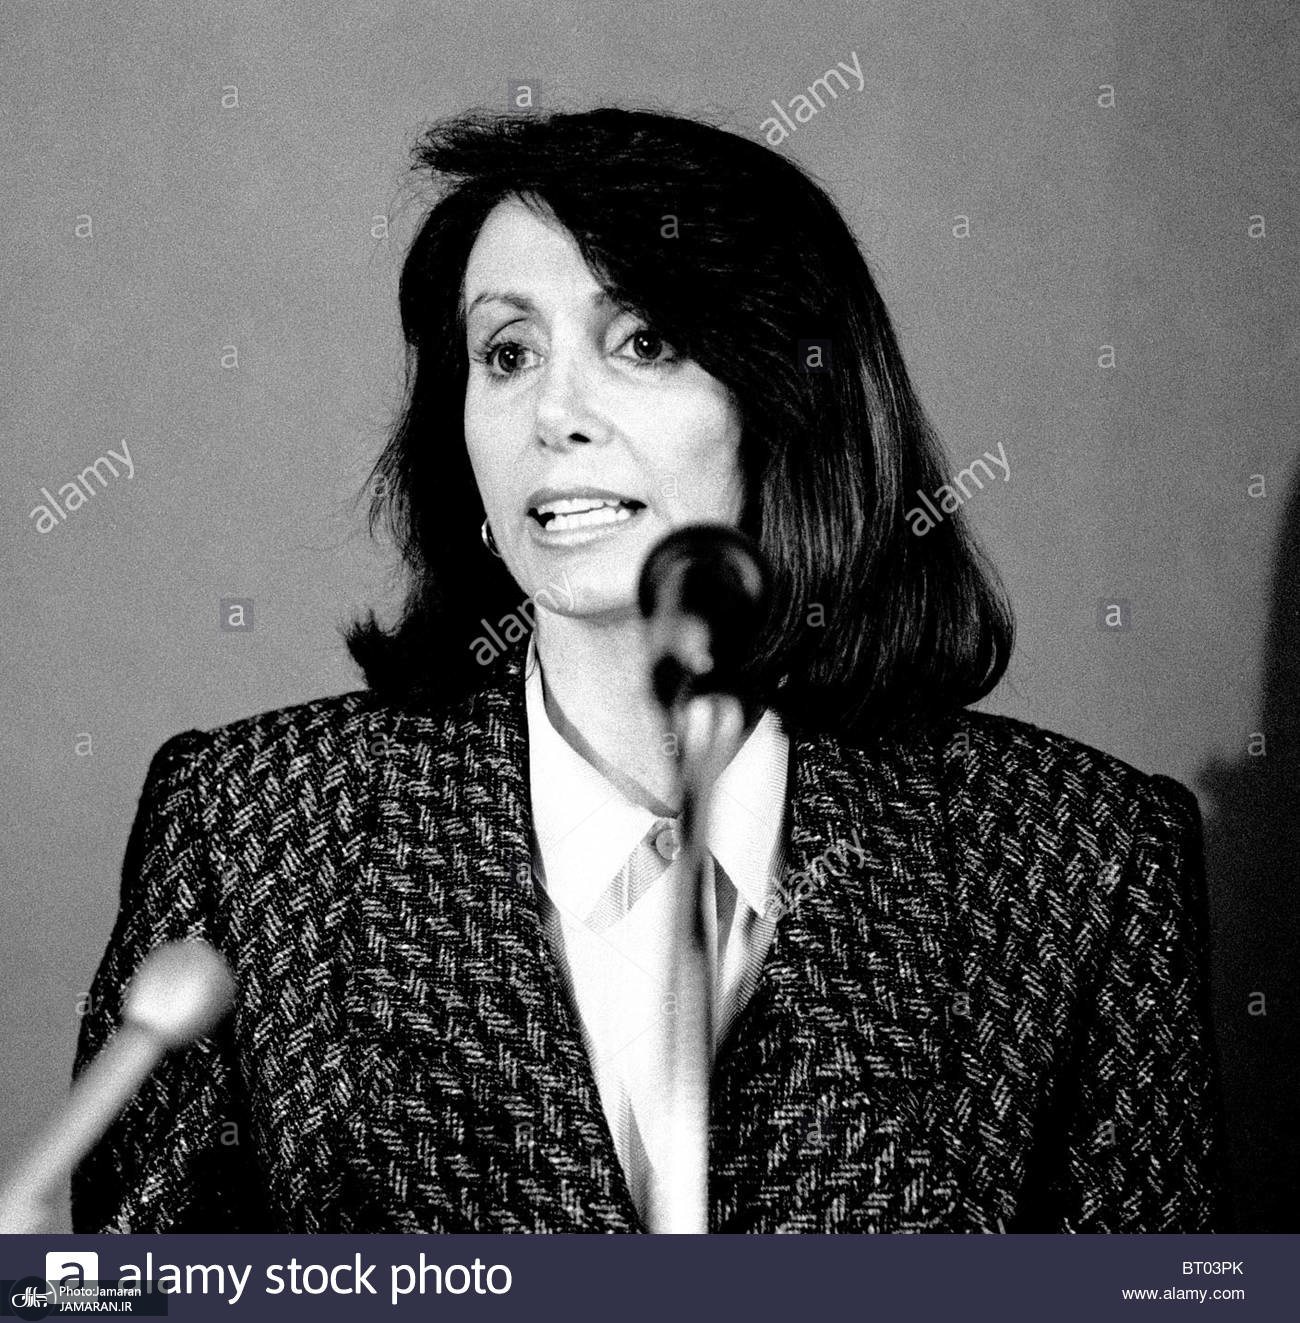 nancy-pelosi-announces-she-is-a-democratic-party-candidate-for-a-seat-BT03PK